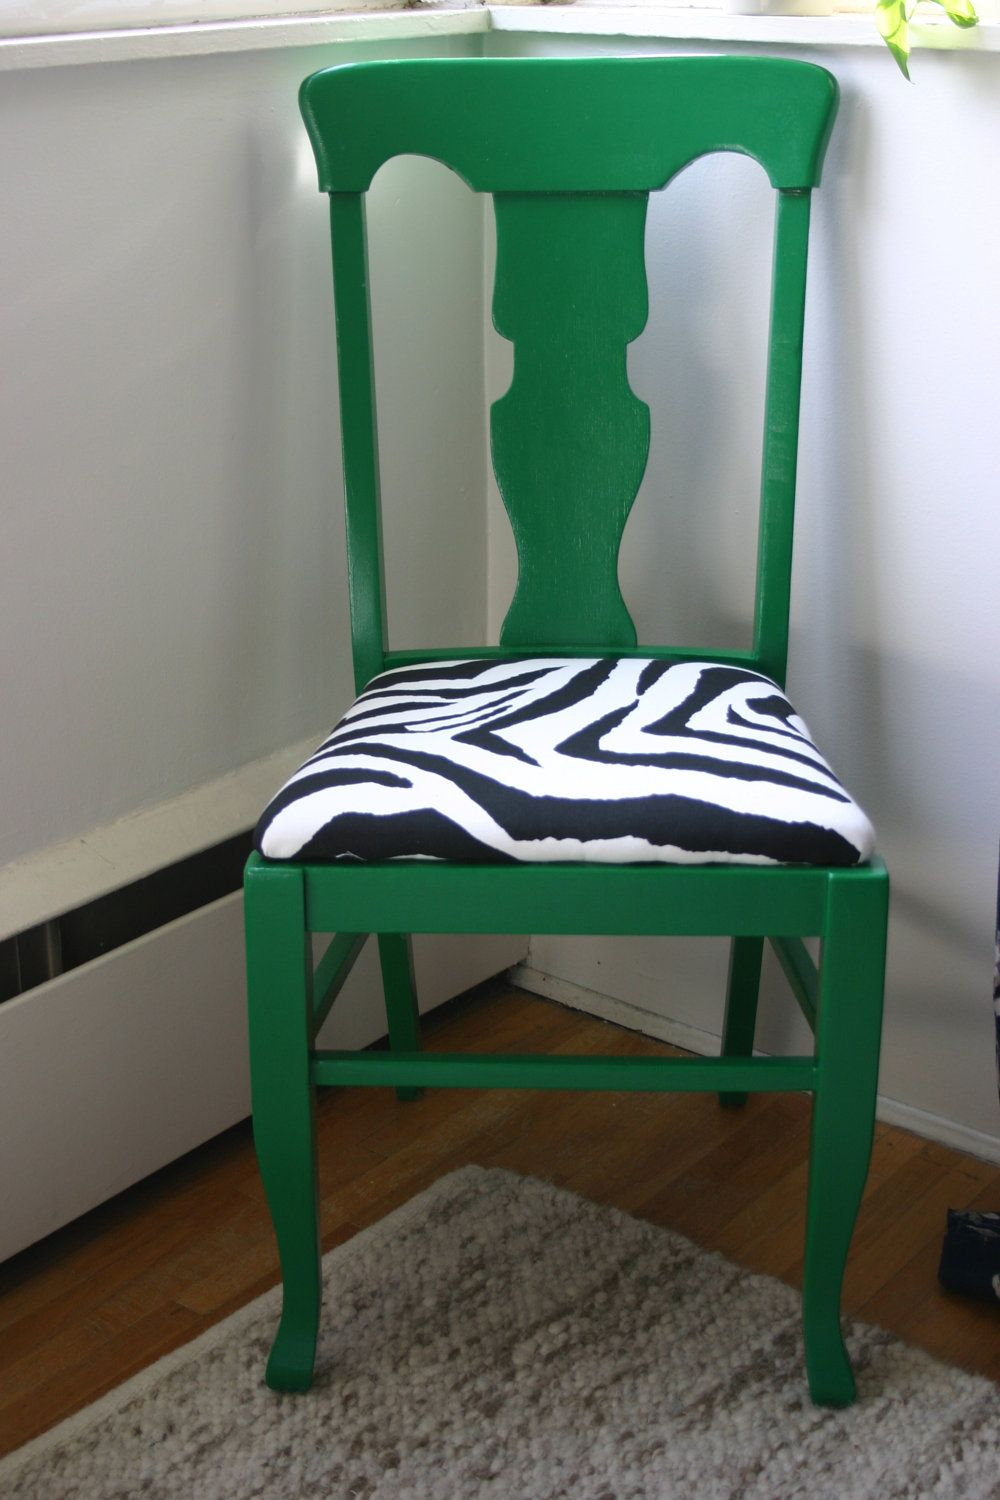 Vintage Chair Green Dining Chair with ZebraPrint Seat